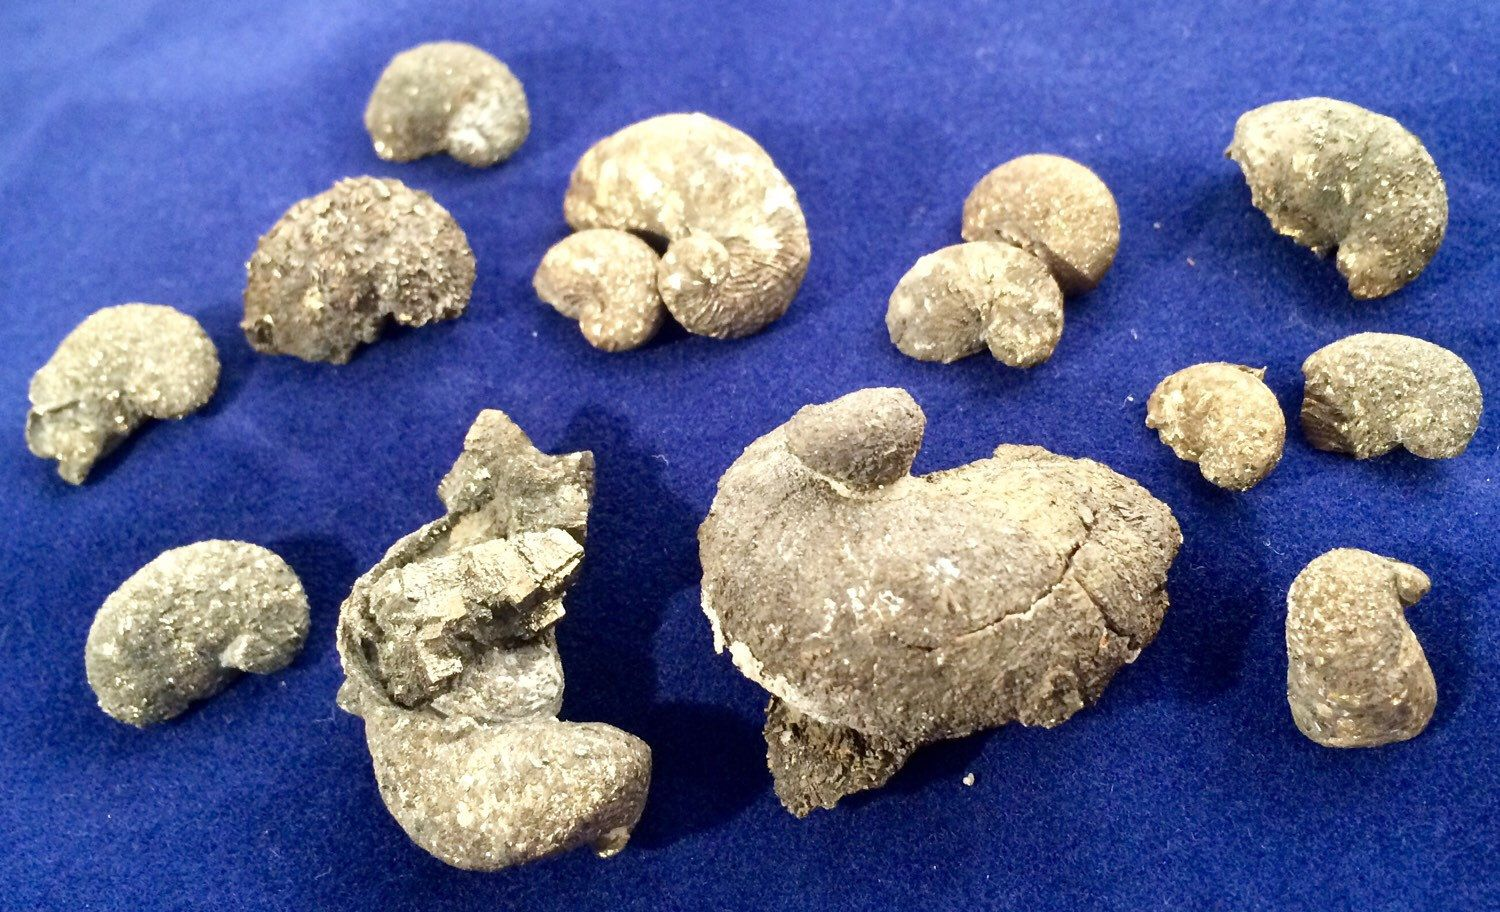 Tumble Polished Ilymatogyra arietina Ram/'s Horn Oyster Fossils with pyrite dusting Lot of 12